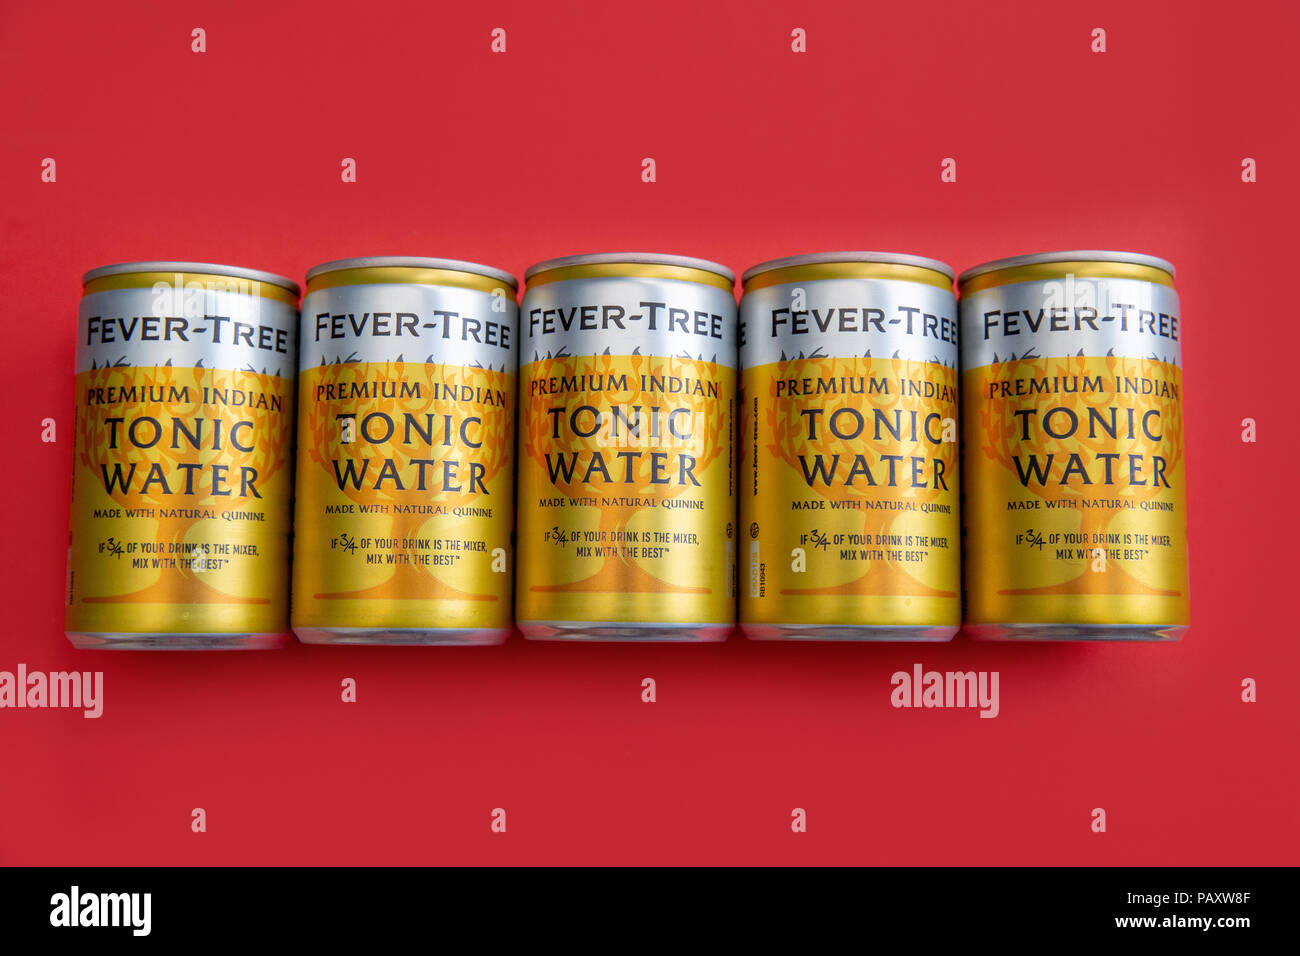 LONDON - July 18, 2018: Fever Tree tonic water cans on red background - Stock Image